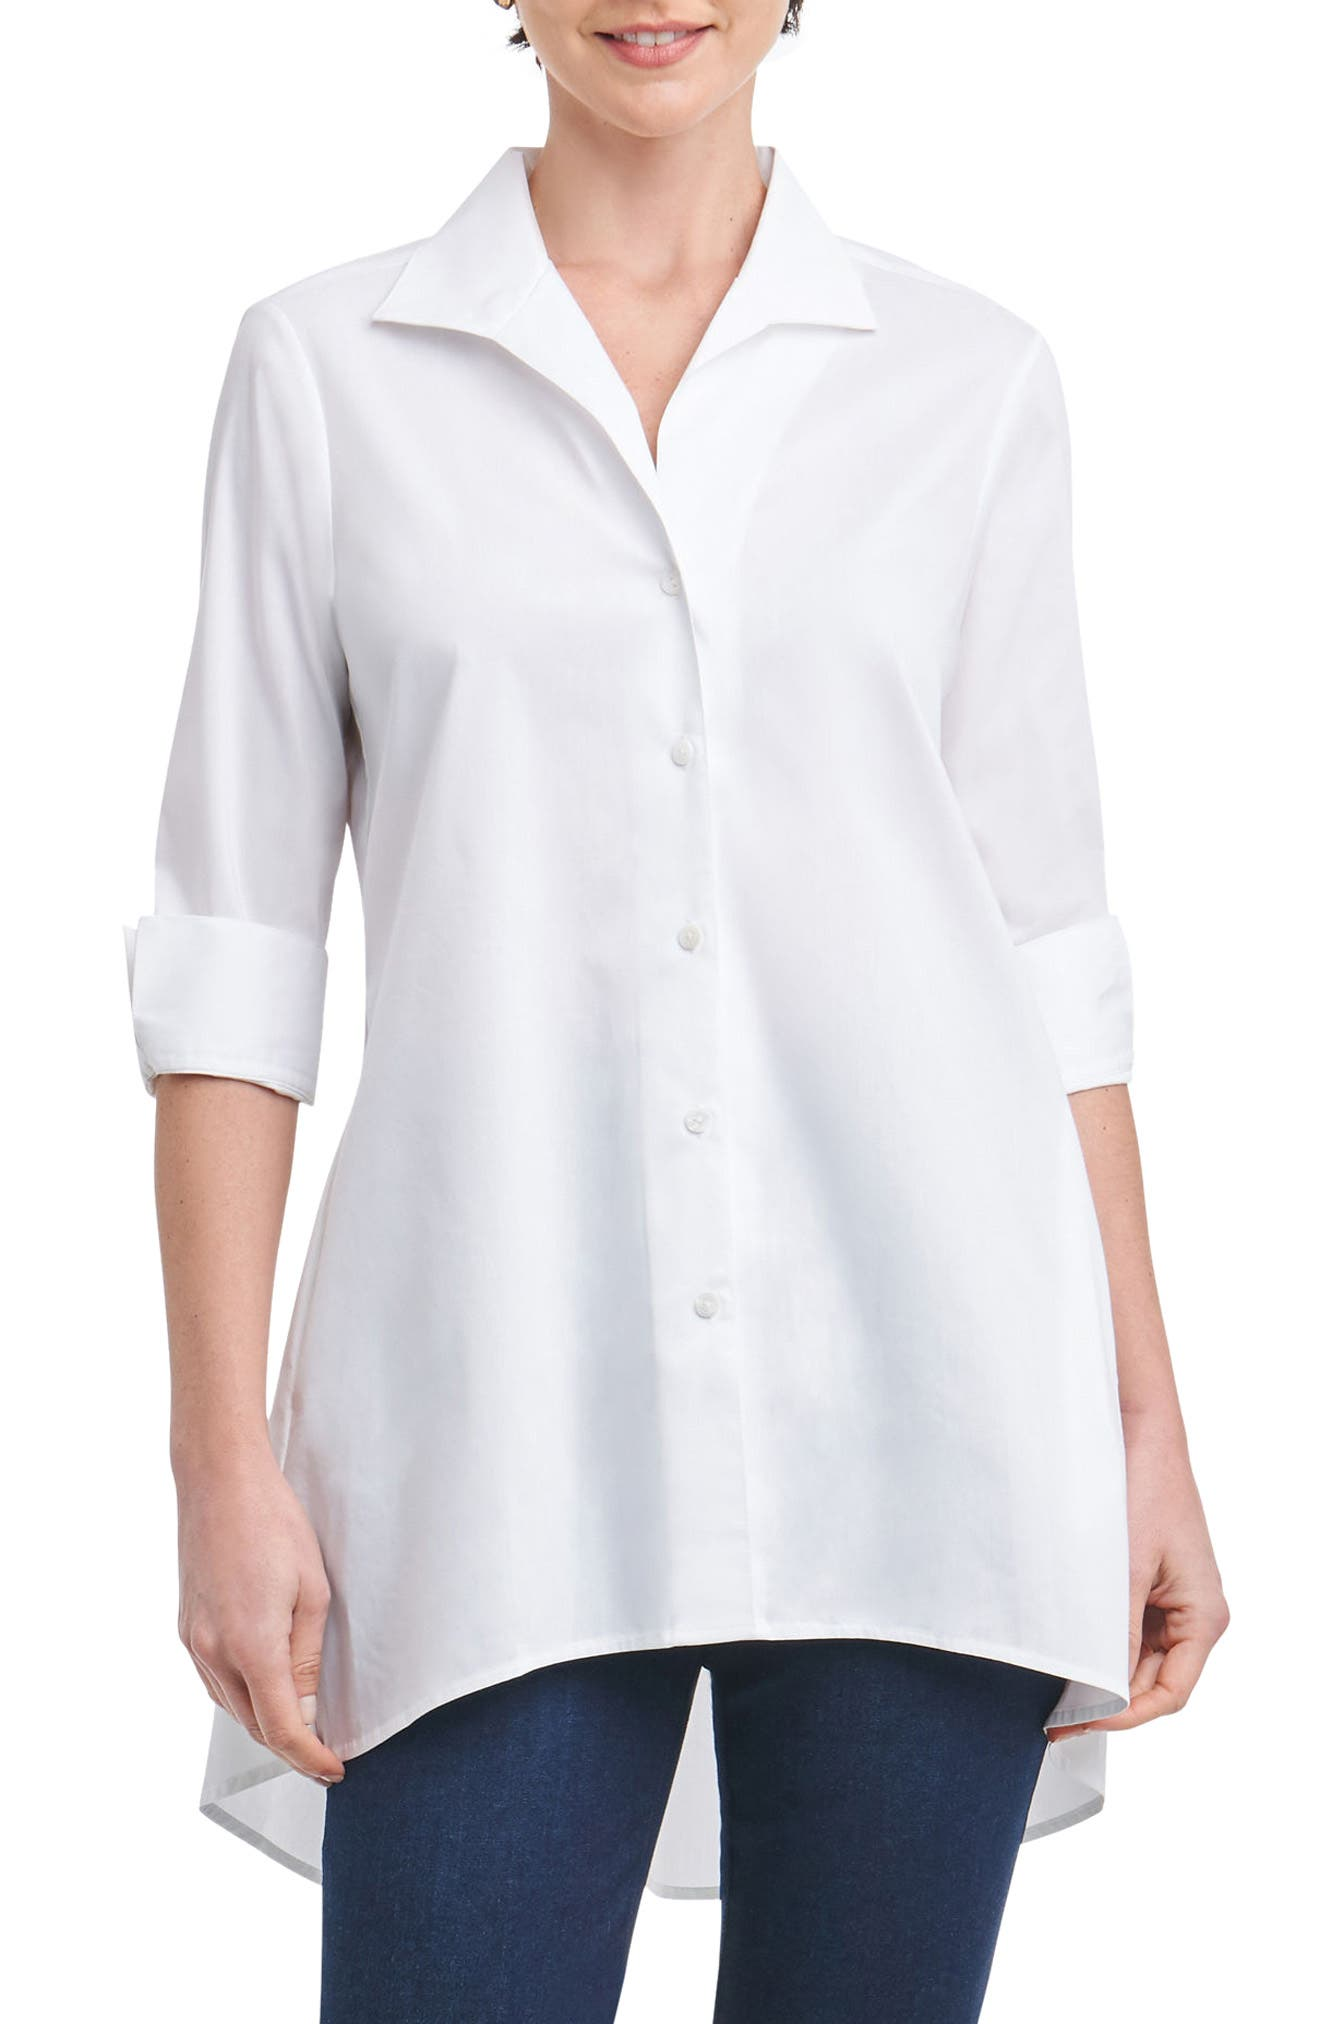 Lucy Stretch Tunic Shirt,                             Main thumbnail 1, color,                             100